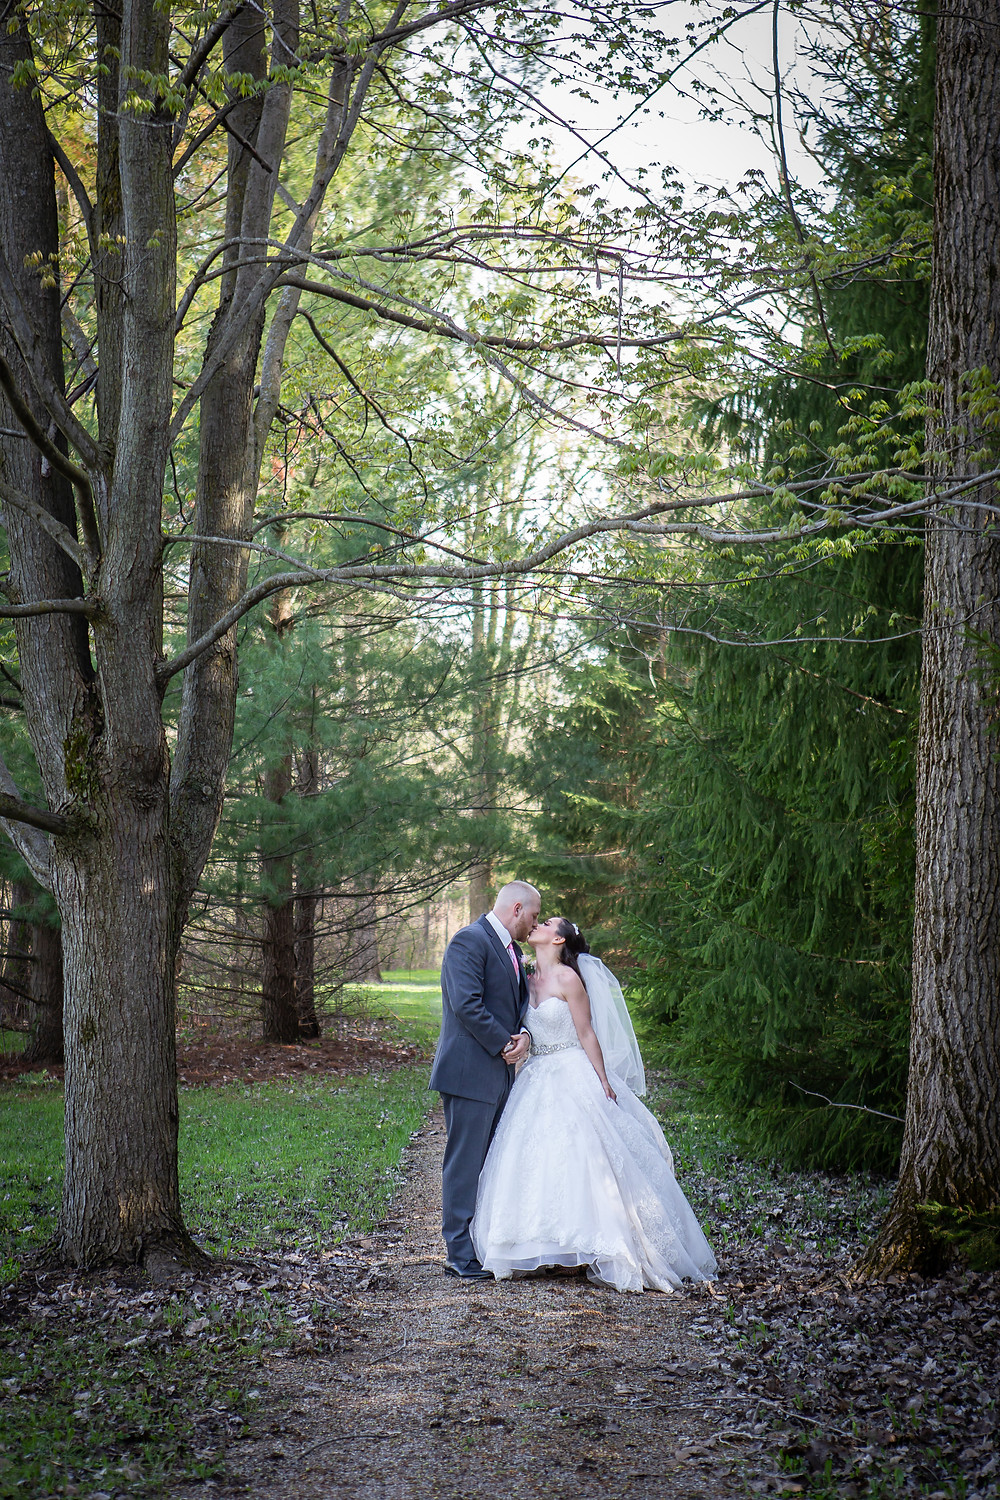 Lori Beneteau Photography London Ontario Wedding Photographer